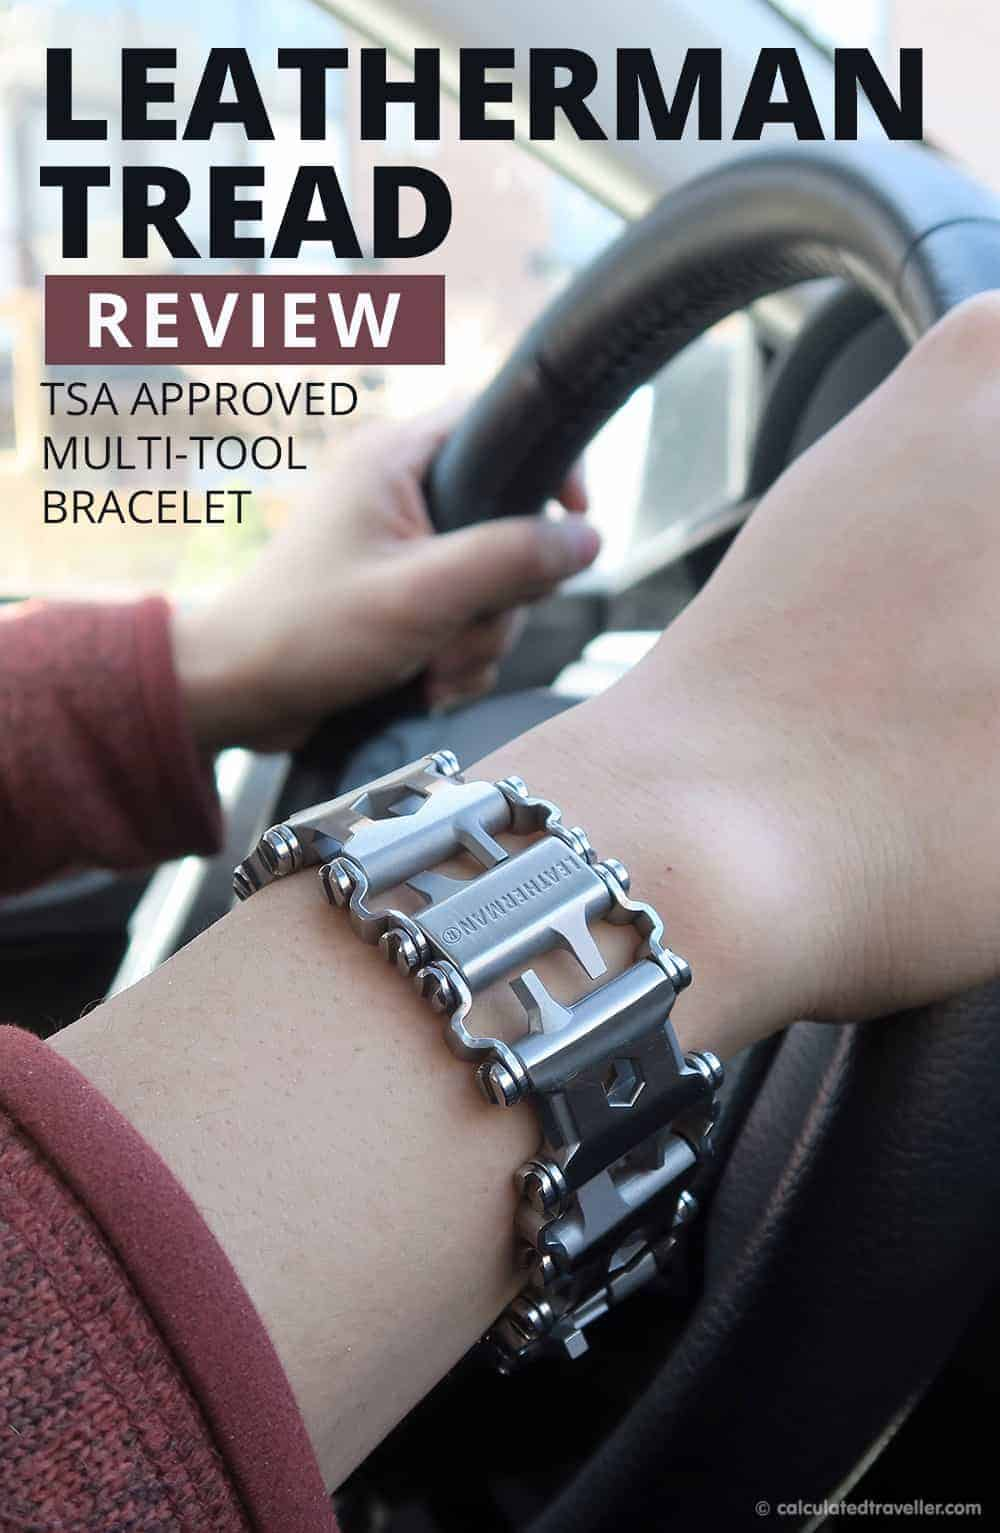 Leatherman Tread Review for Travel by Calculated Traveller